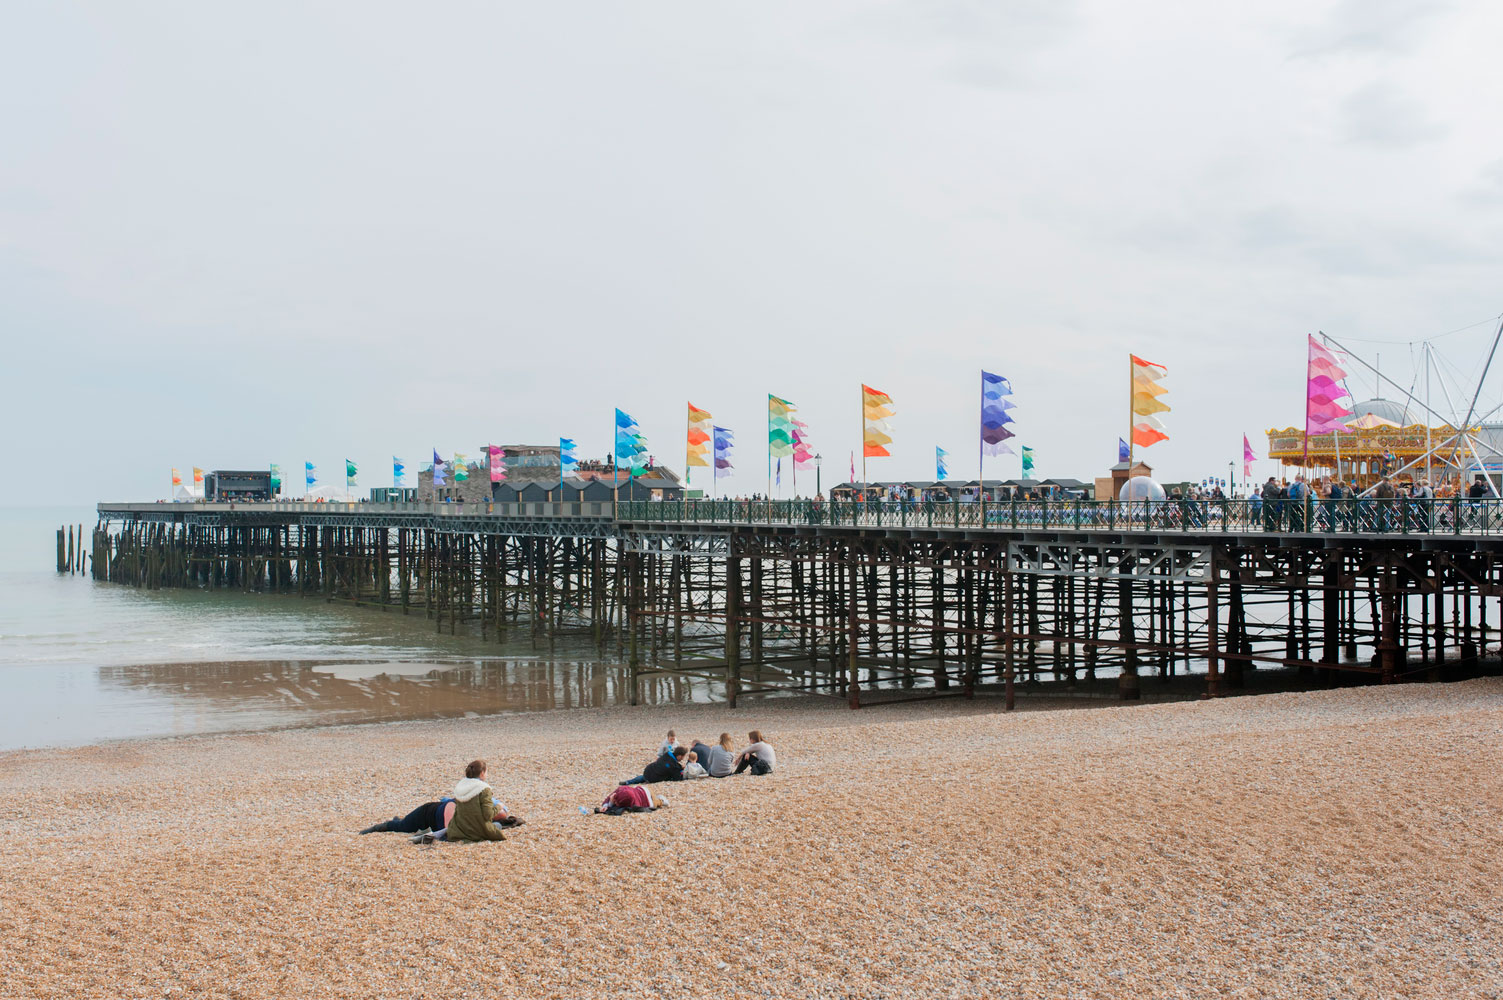 Hastings Pier, revamped by dRMM